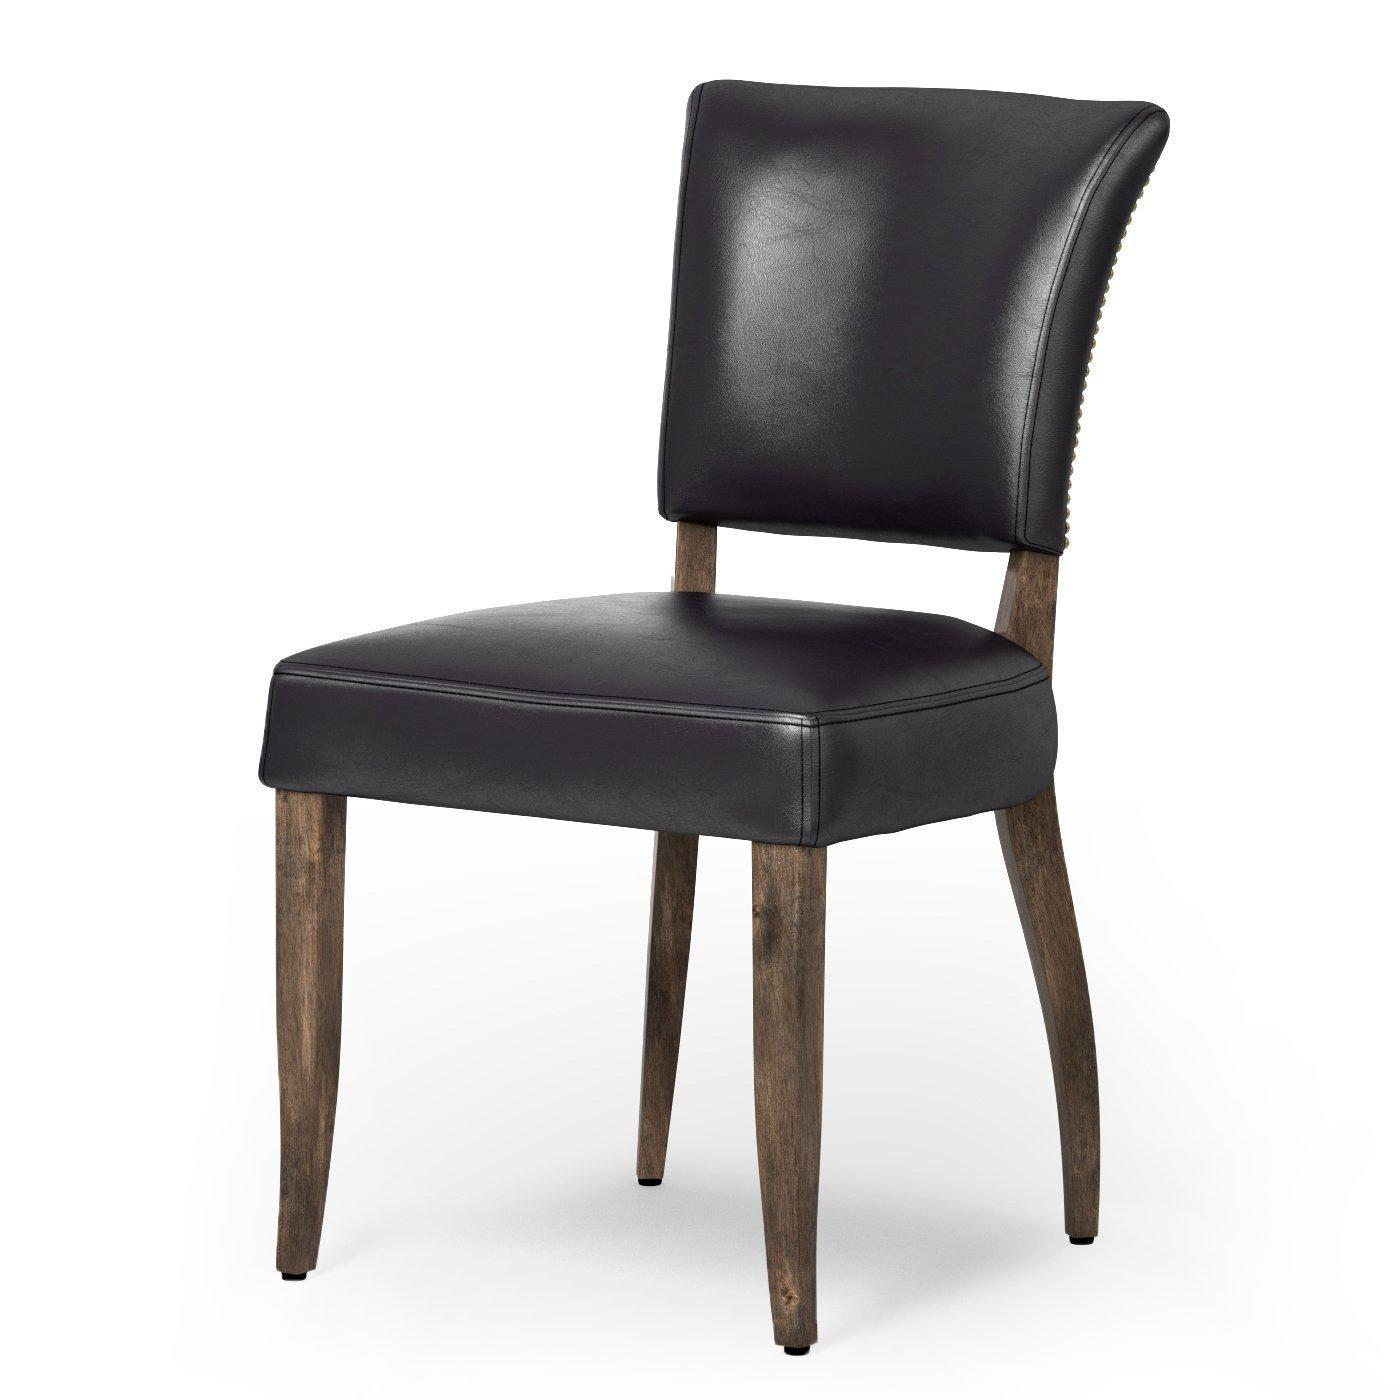 Mimi Leather Dining Chair (Rider Black) - Carnegie Collection | Dining Chair | parker-gwen